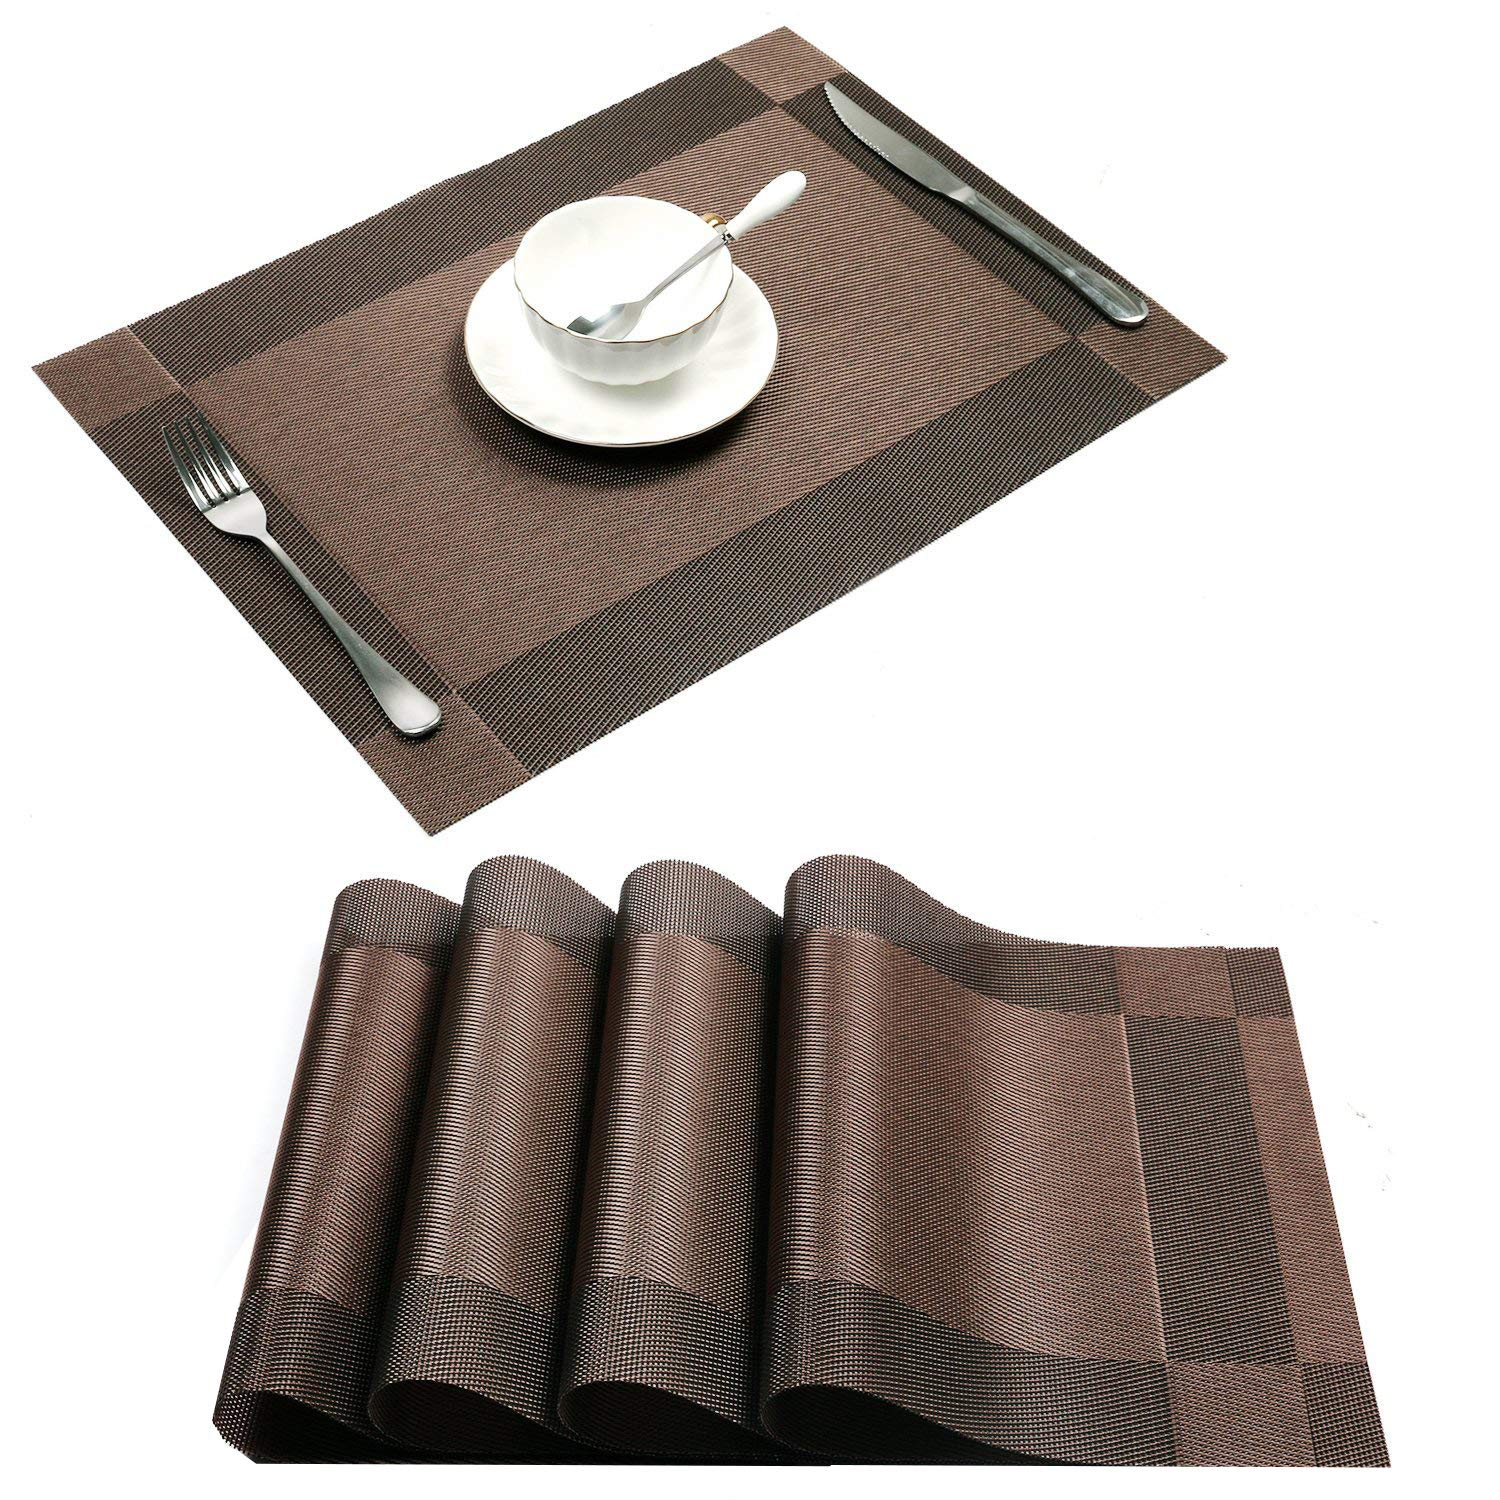 U'Artlines Placemat, Crossweave Woven Vinyl Non-Slip Insulation Placemat Washable Table Mats (Brown, 4pcs placemats)